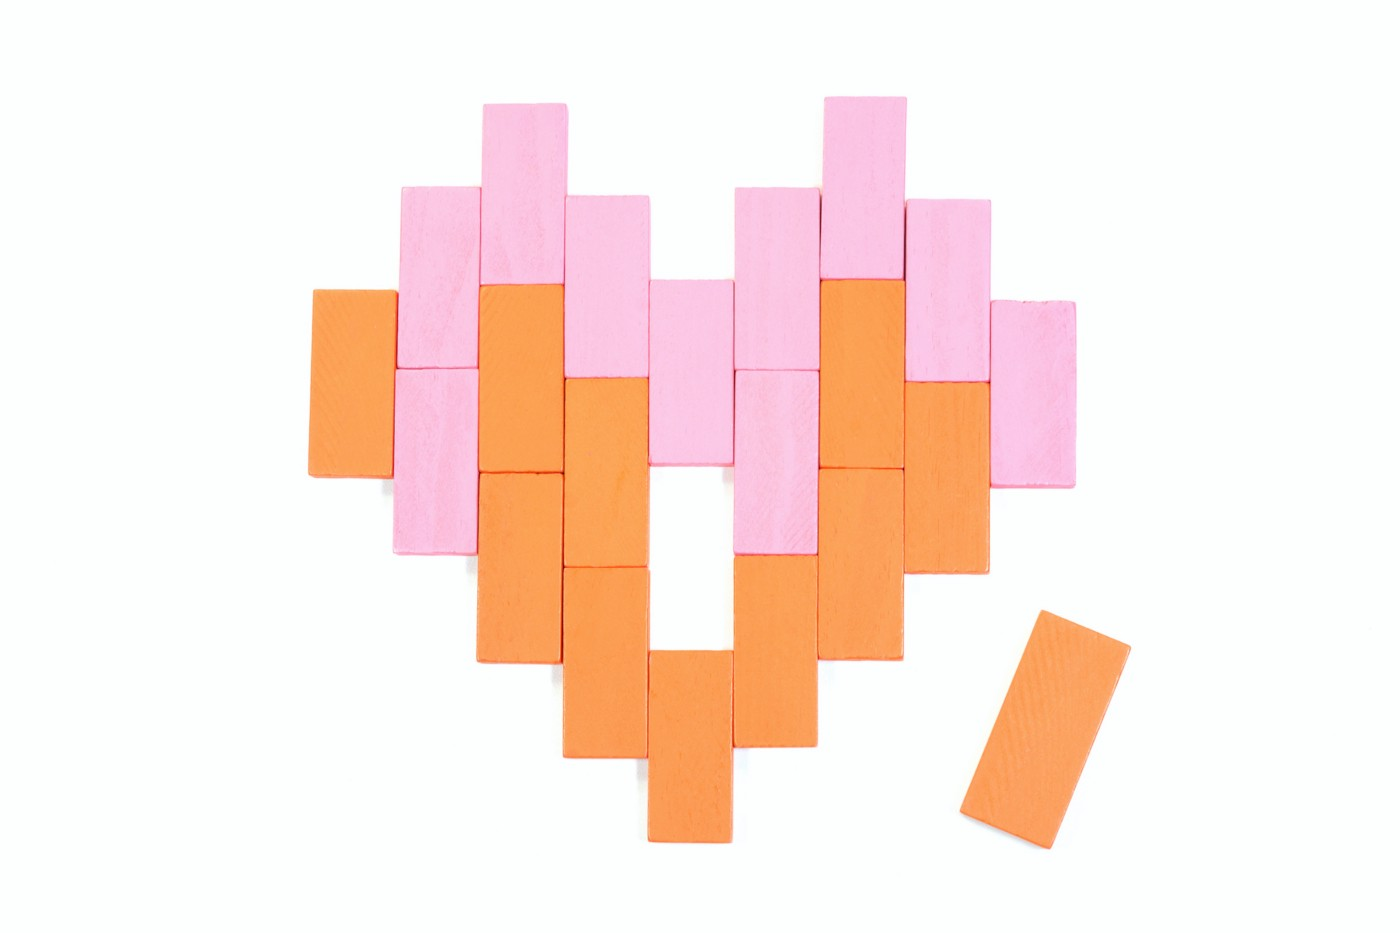 Orange and pink rectangular blocks arranged in the shape of a heart with one piece missing (an orange one next to the heart)